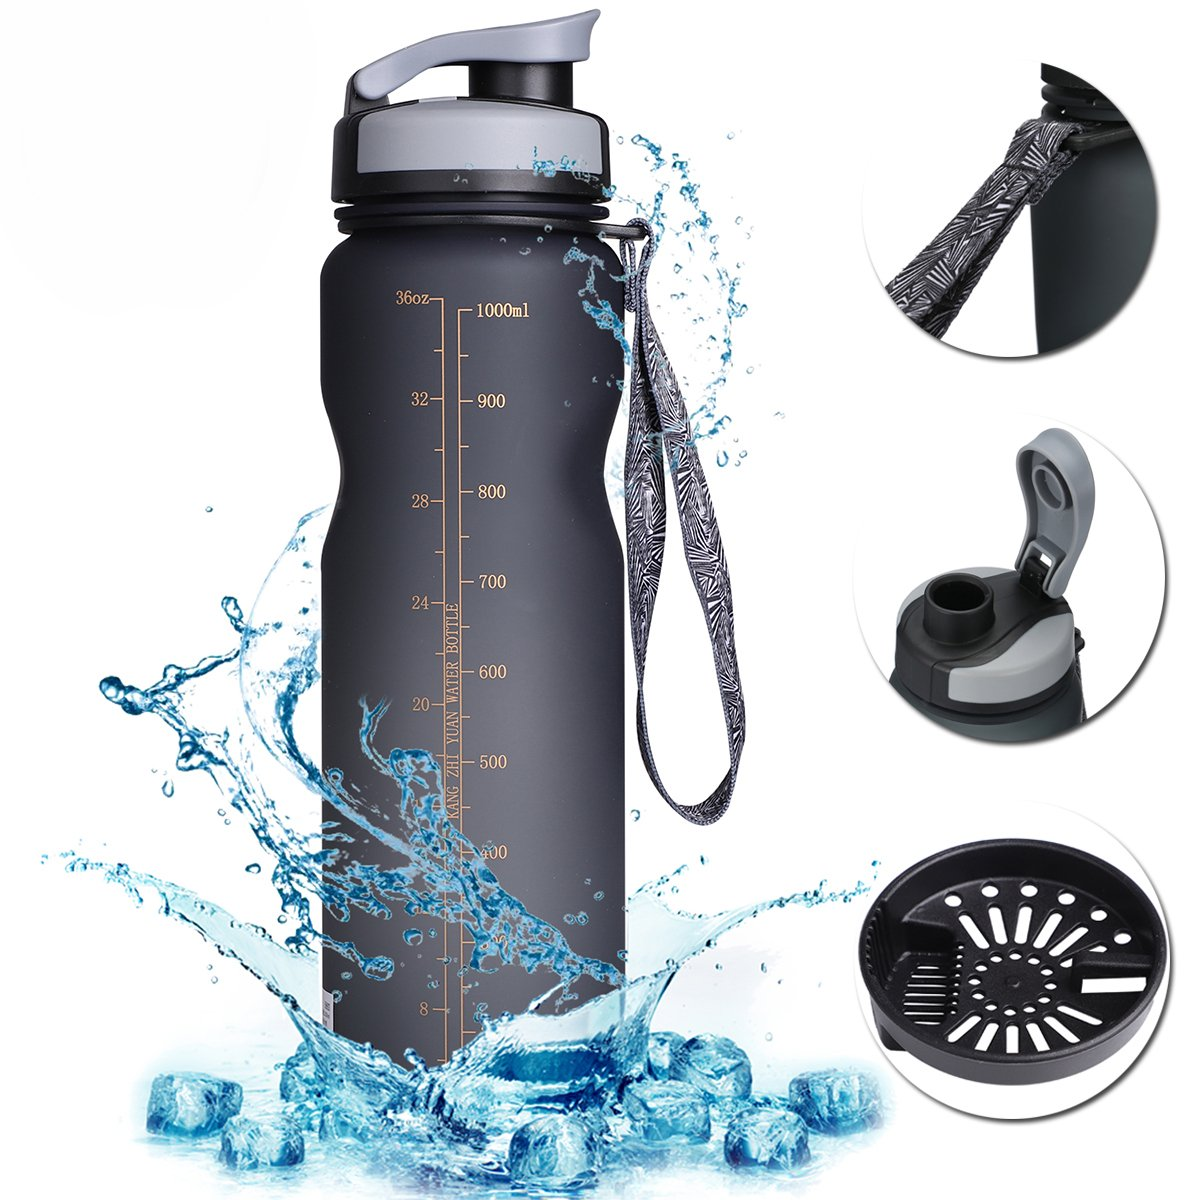 Sports Water Bottle with Filter & Strap, SOKLIT Portable BPA Free Drinking Cup 36oz/1000ml, Flip Top Leak Proof - 0.51lb Plastic Bottles for Gym Outdoor Hiking Camping (Gray)…